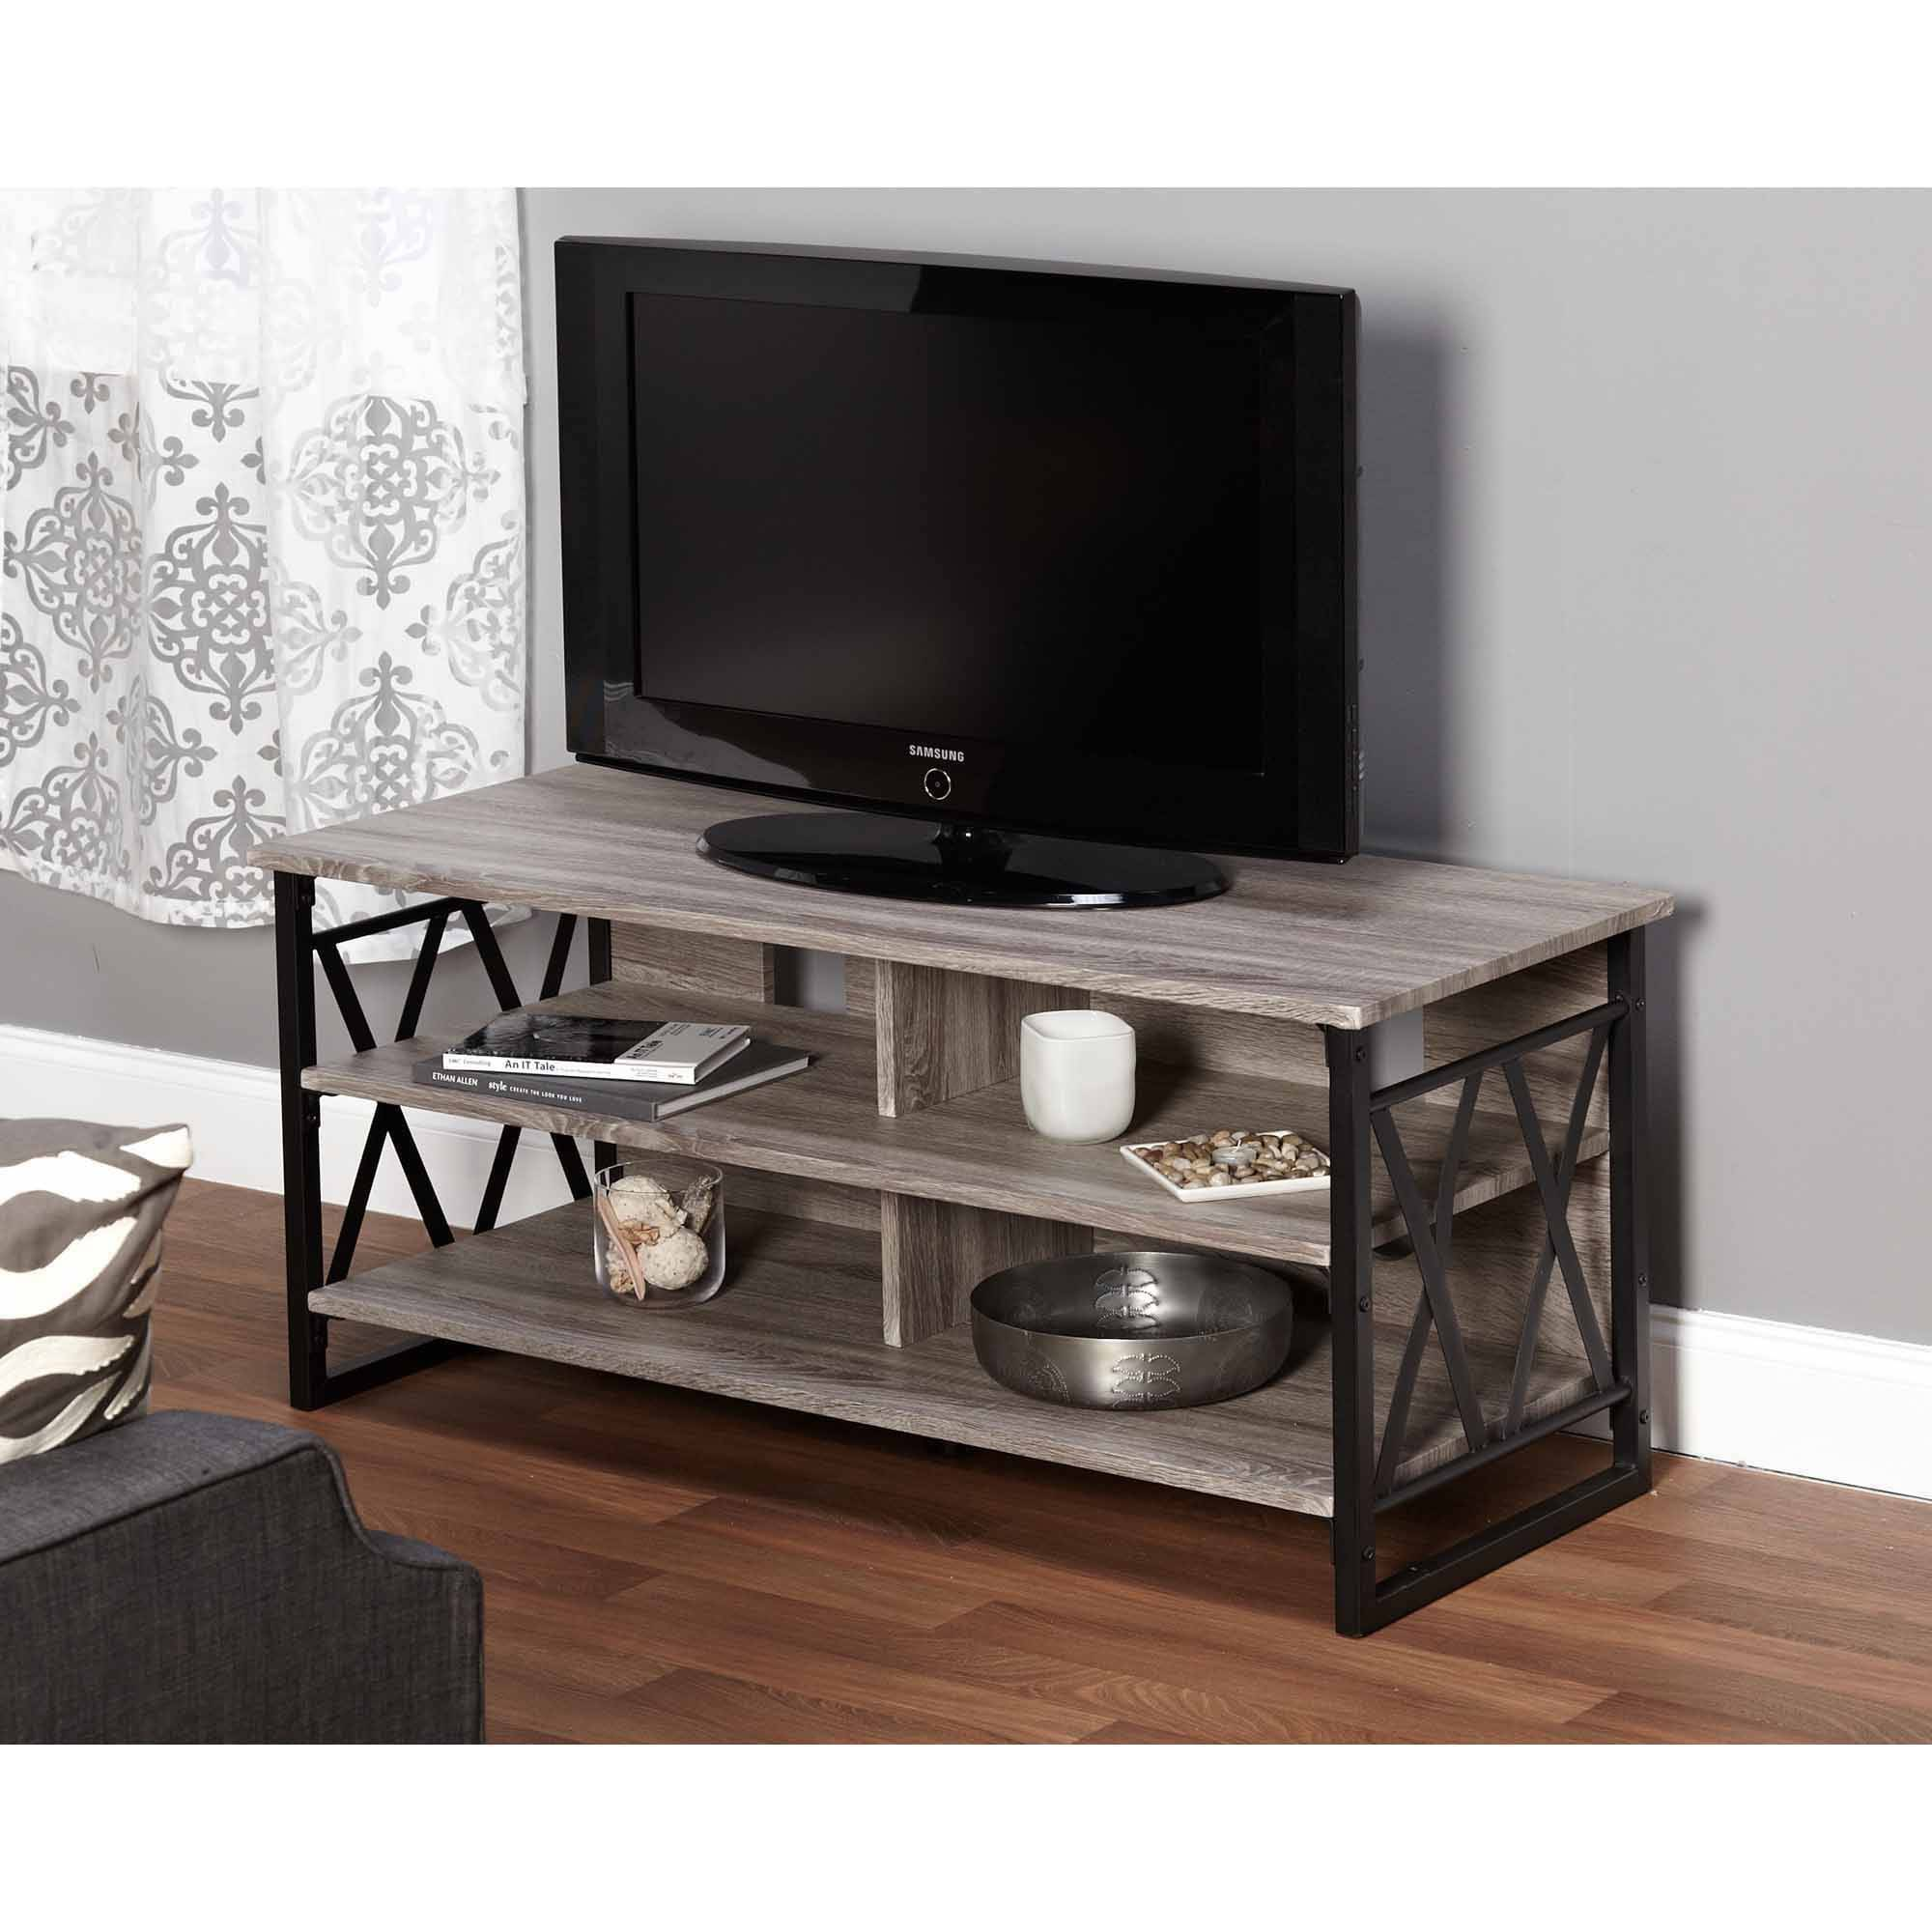 Rustic Entertainment Centers Tv Stands Home Garden Rustic Wood Metal Entertainment Center Media Storage Tv Stand Grey Brown Topografiapv Cl